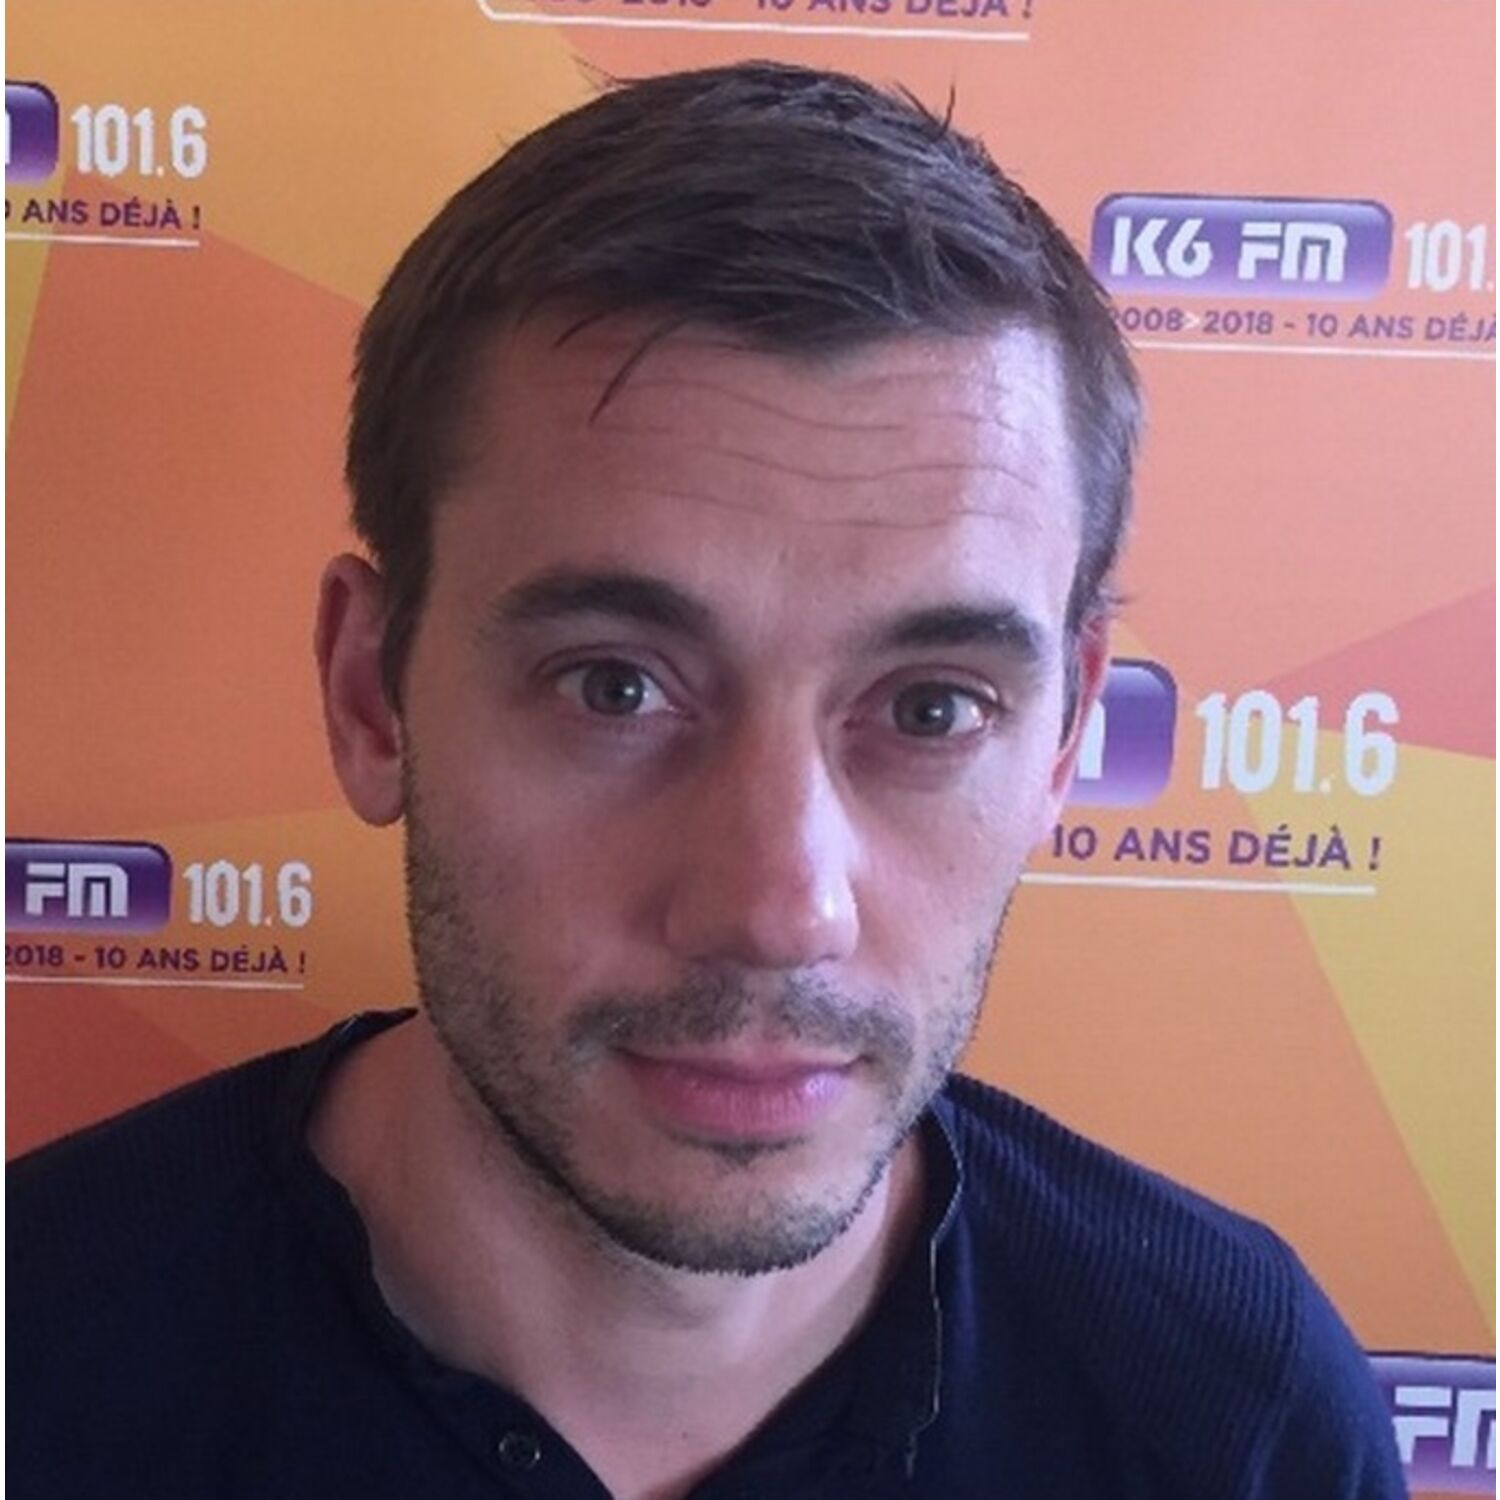 Début du mondial de football : interview de Clément Turpin